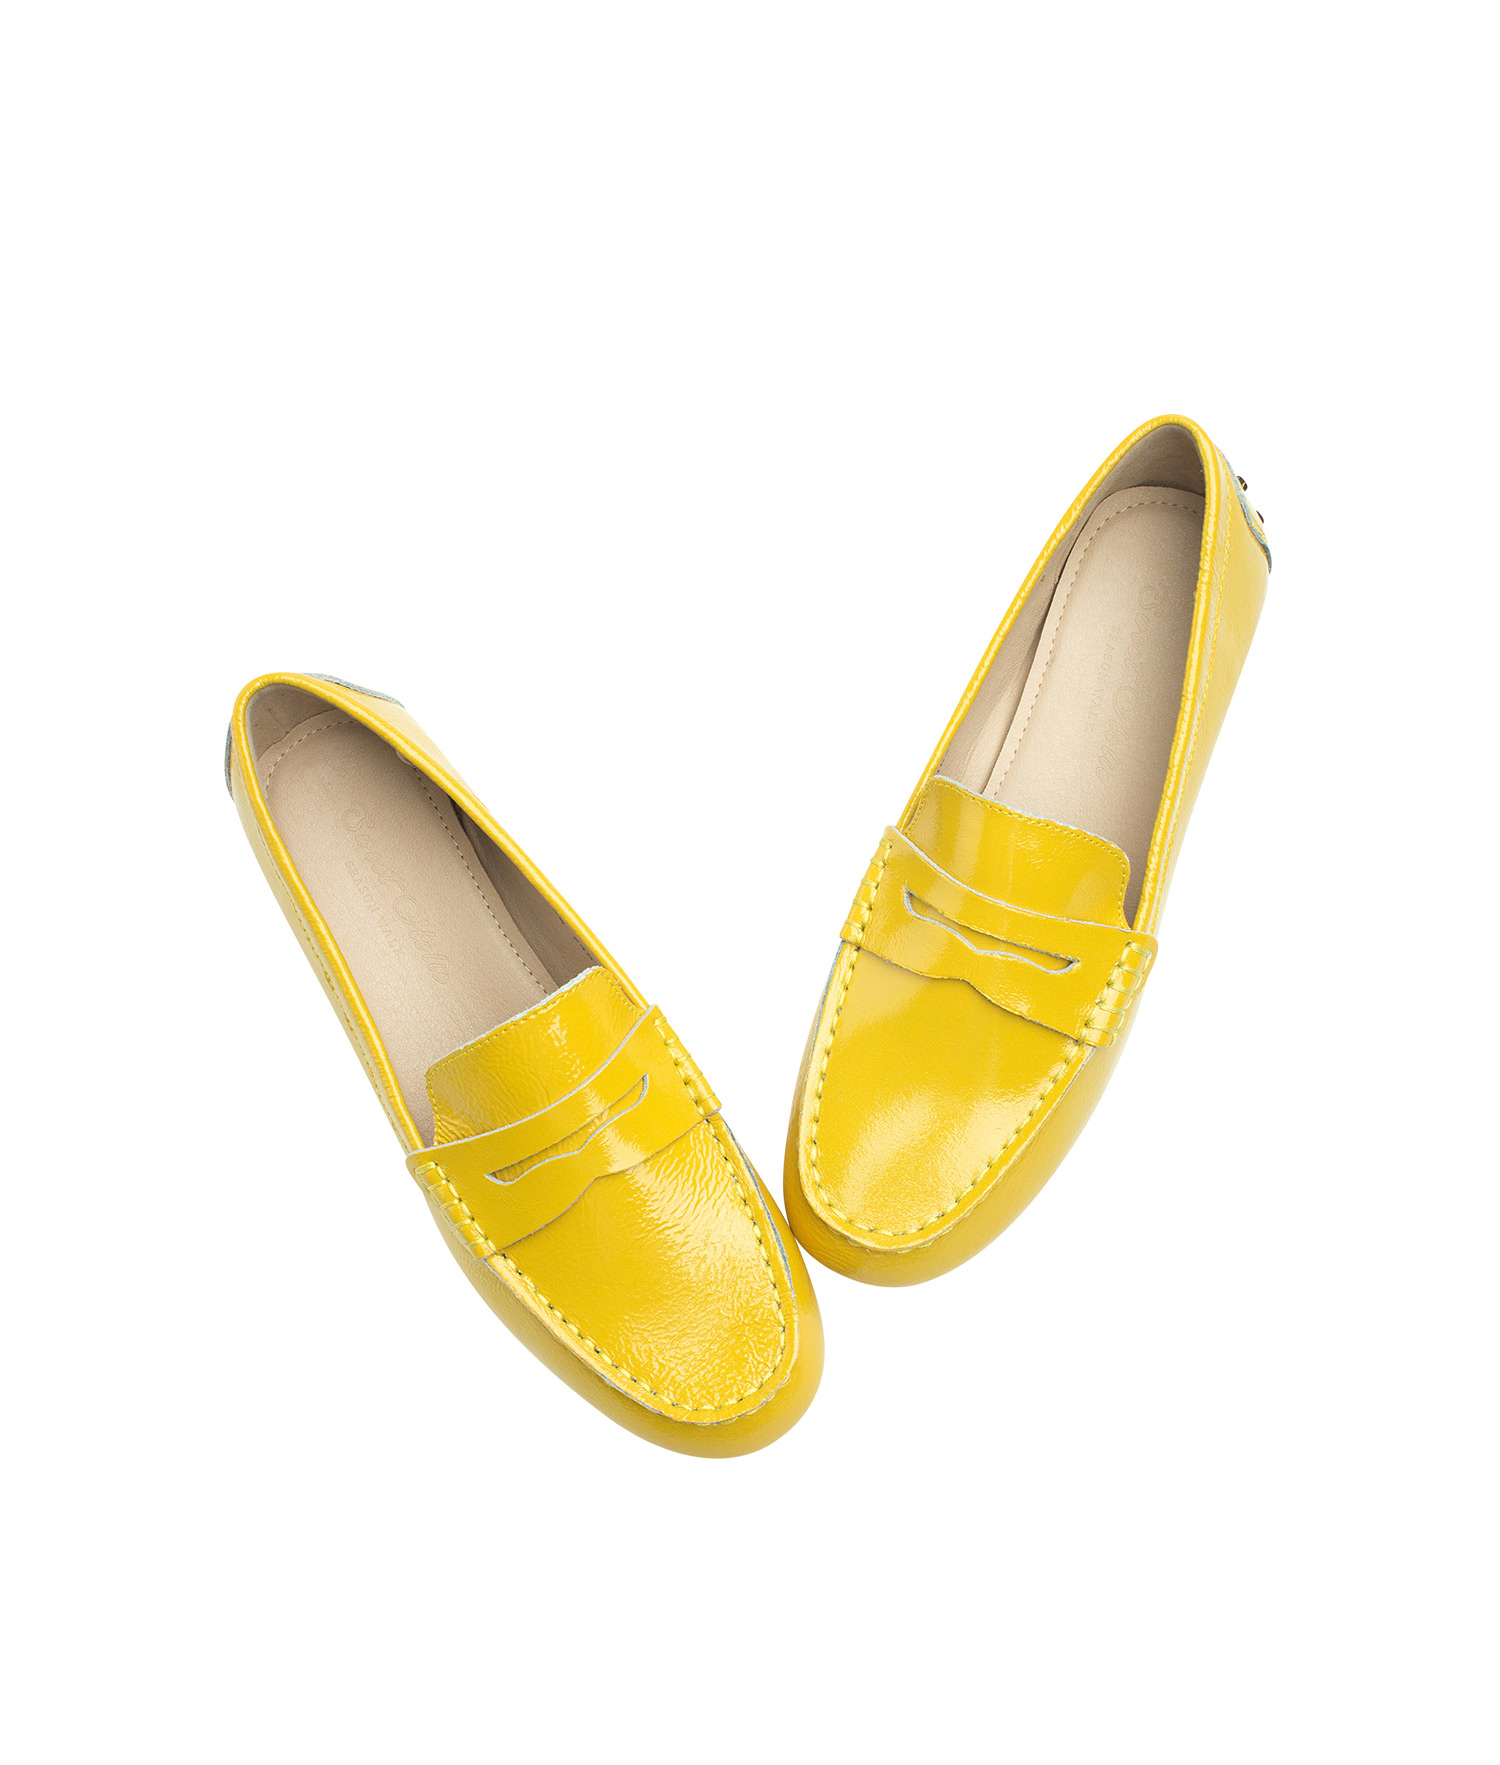 Patent Leather Penny Loafer Driving Shoes ...